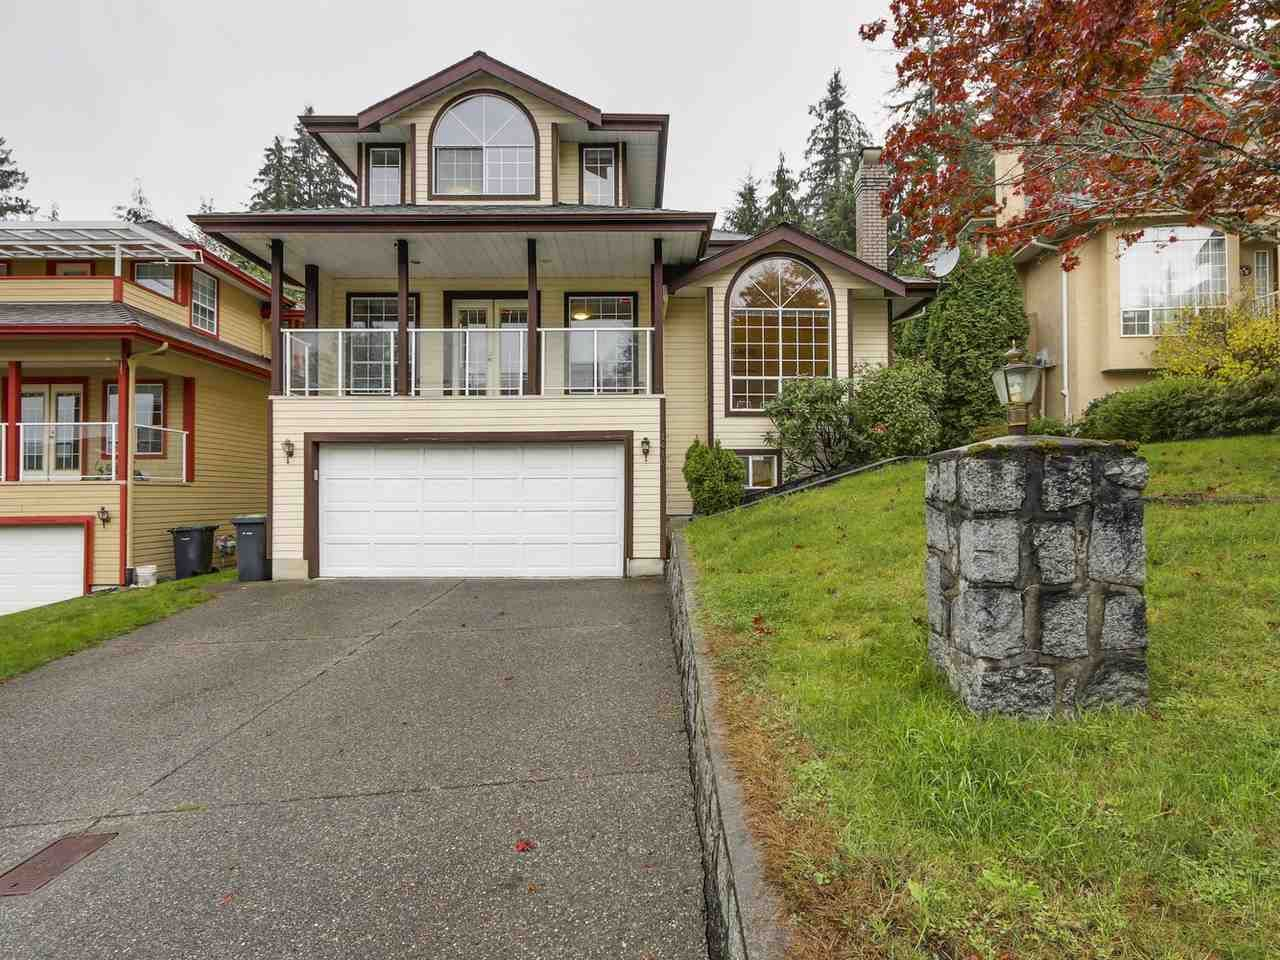 Main Photo: 1410 PURCELL Drive in Coquitlam: Westwood Plateau House for sale : MLS®# R2117588